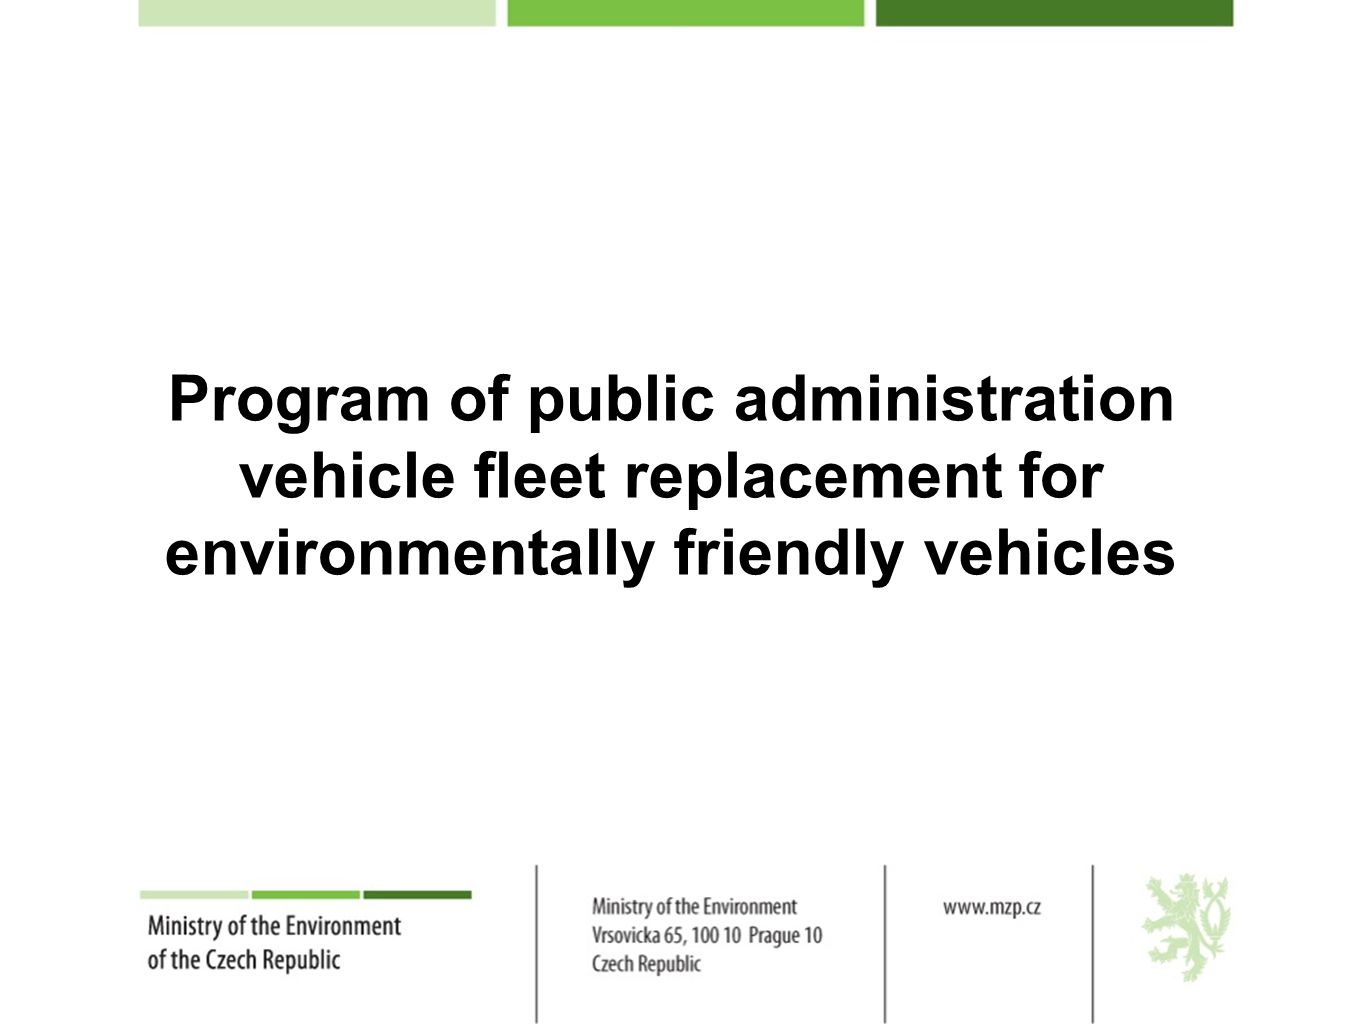 Program of public administration vehicle fleet replacement for environmentally friendly vehicles